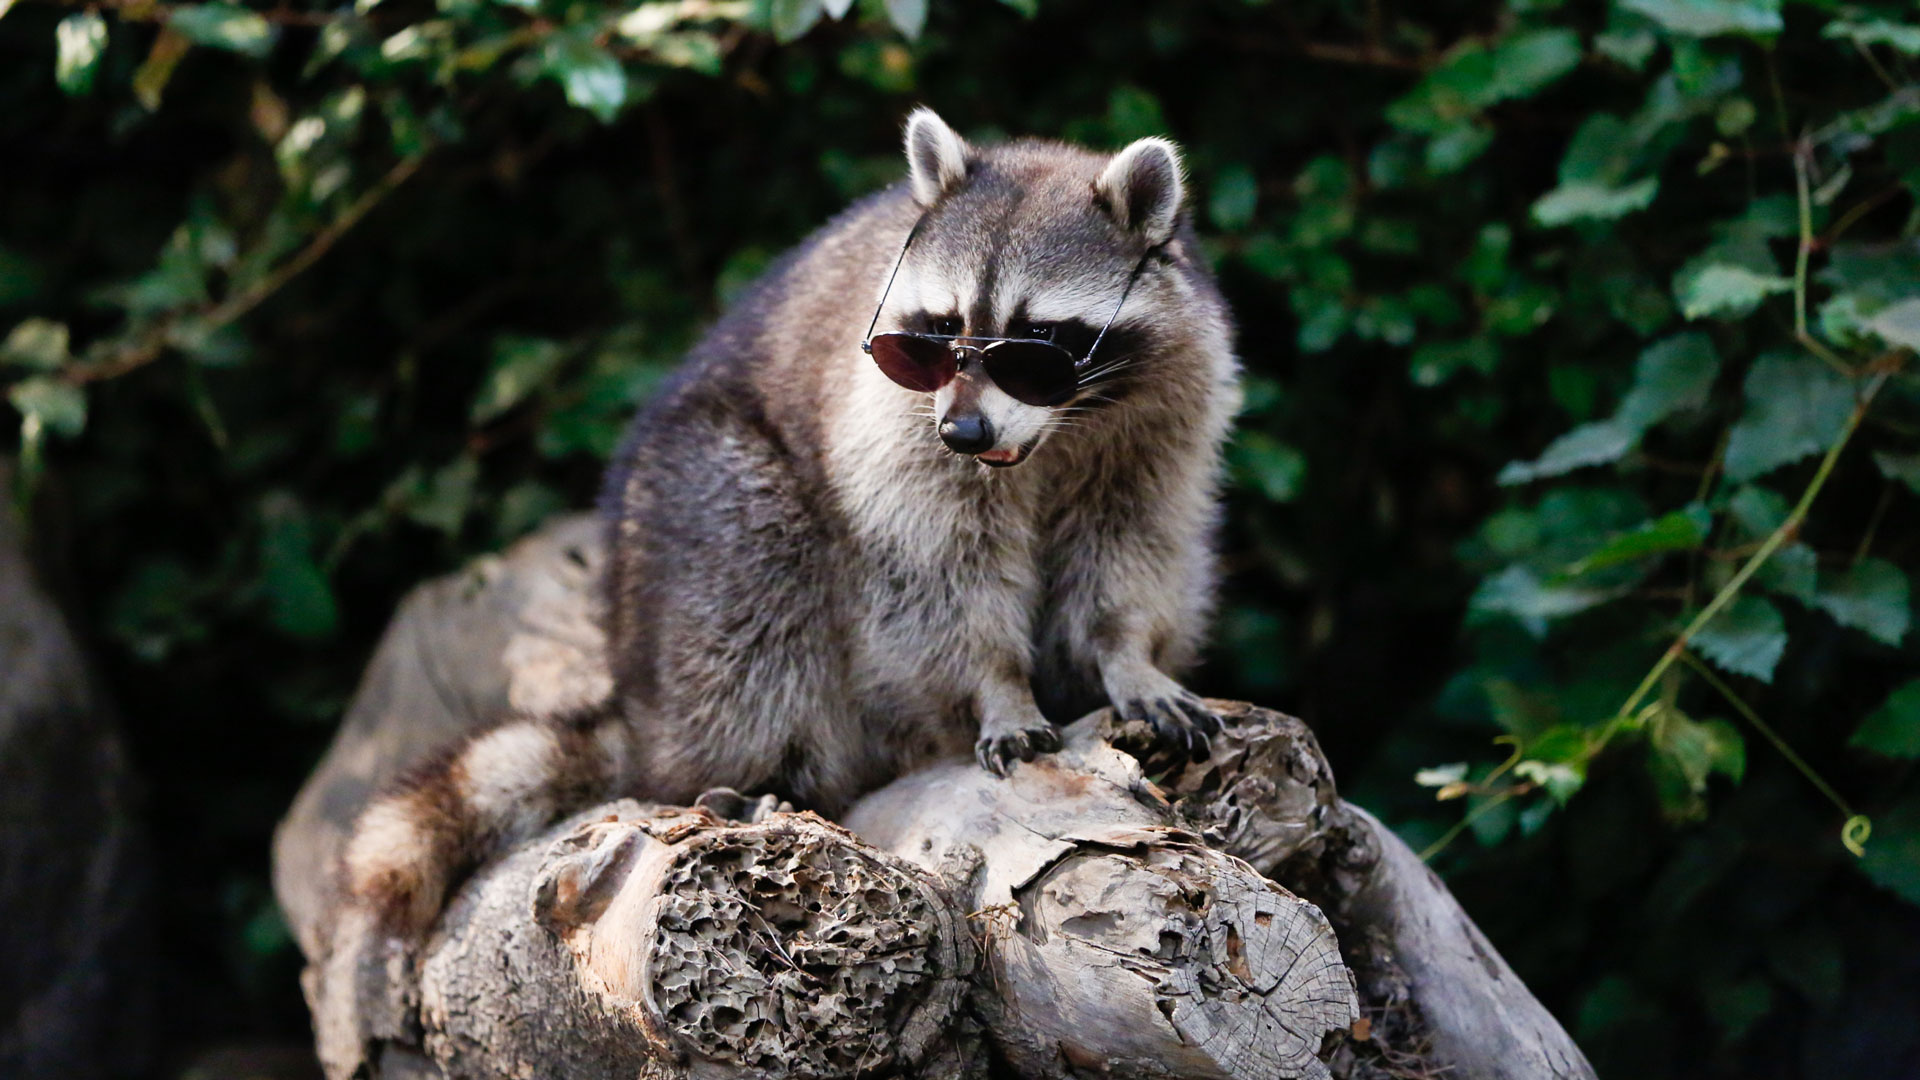 Who's got a camera, because the world needs to see a raccoon wearing sunglasses!